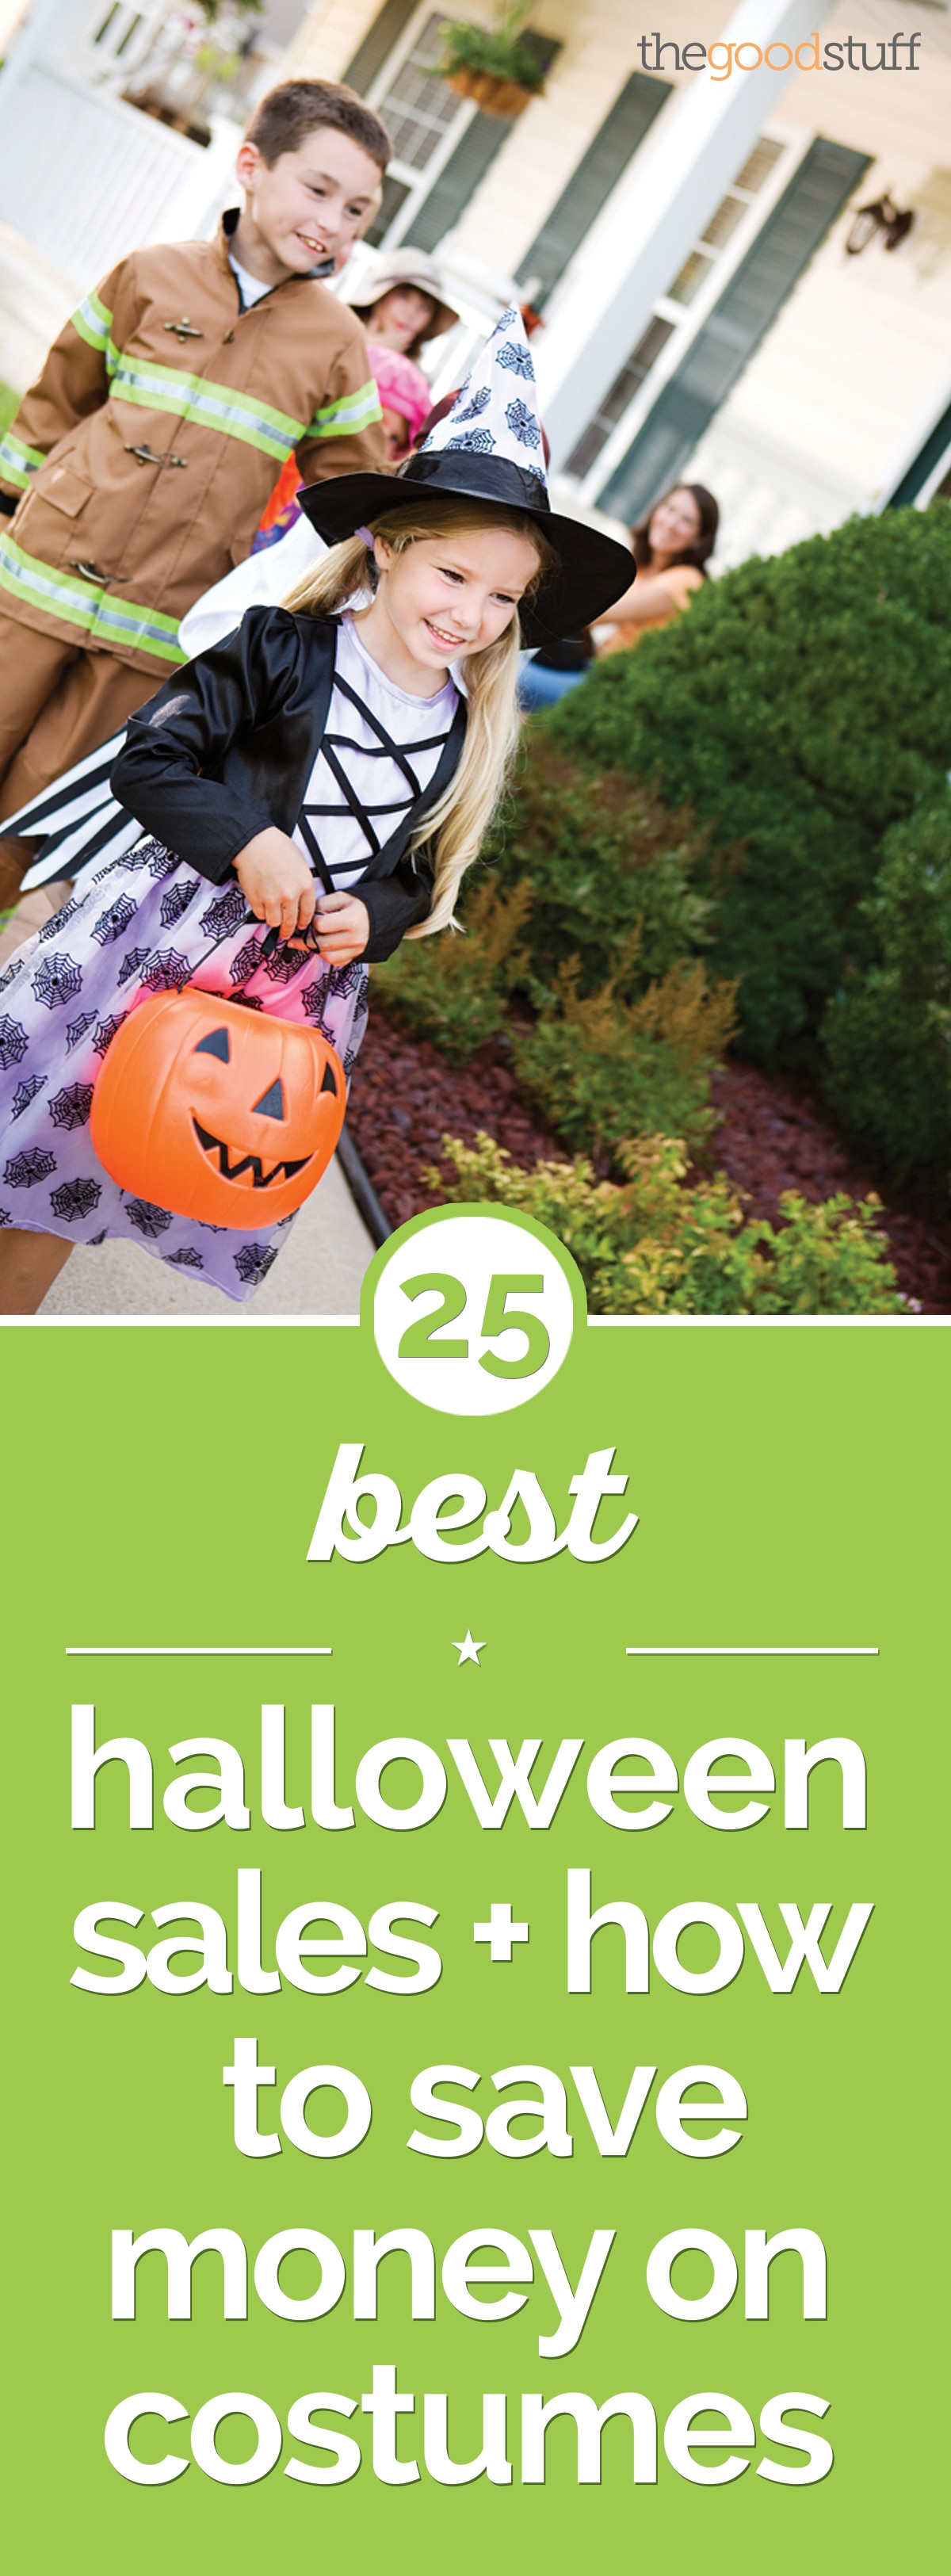 25+ Best Halloween Sales + How to Save Money on Costumes | thegoodstuff